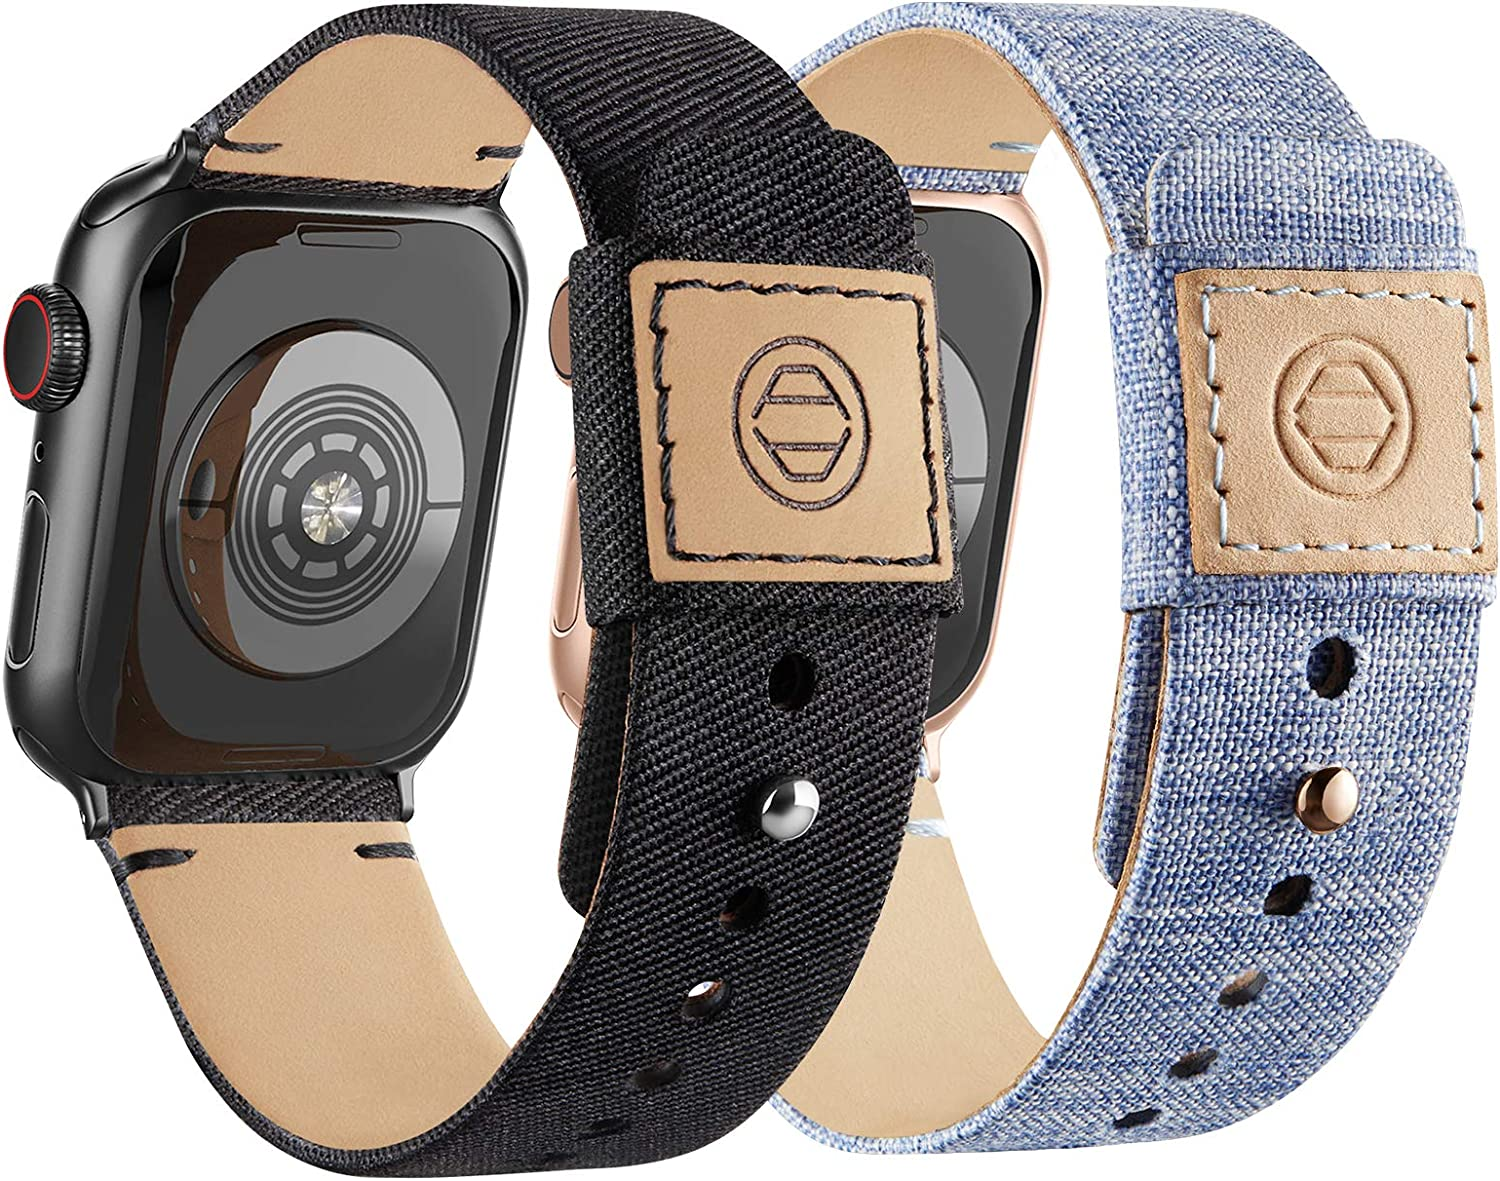 Compatible with Apple Watch Bands 38mm 40mm, Soft Cloth Fabric iWatch Bands Women Men Canvas with Genuine Leather Lining and Snap Button Straps for Apple Watch Series 6/5/4/3/2/1/SE, Black, Lightblue